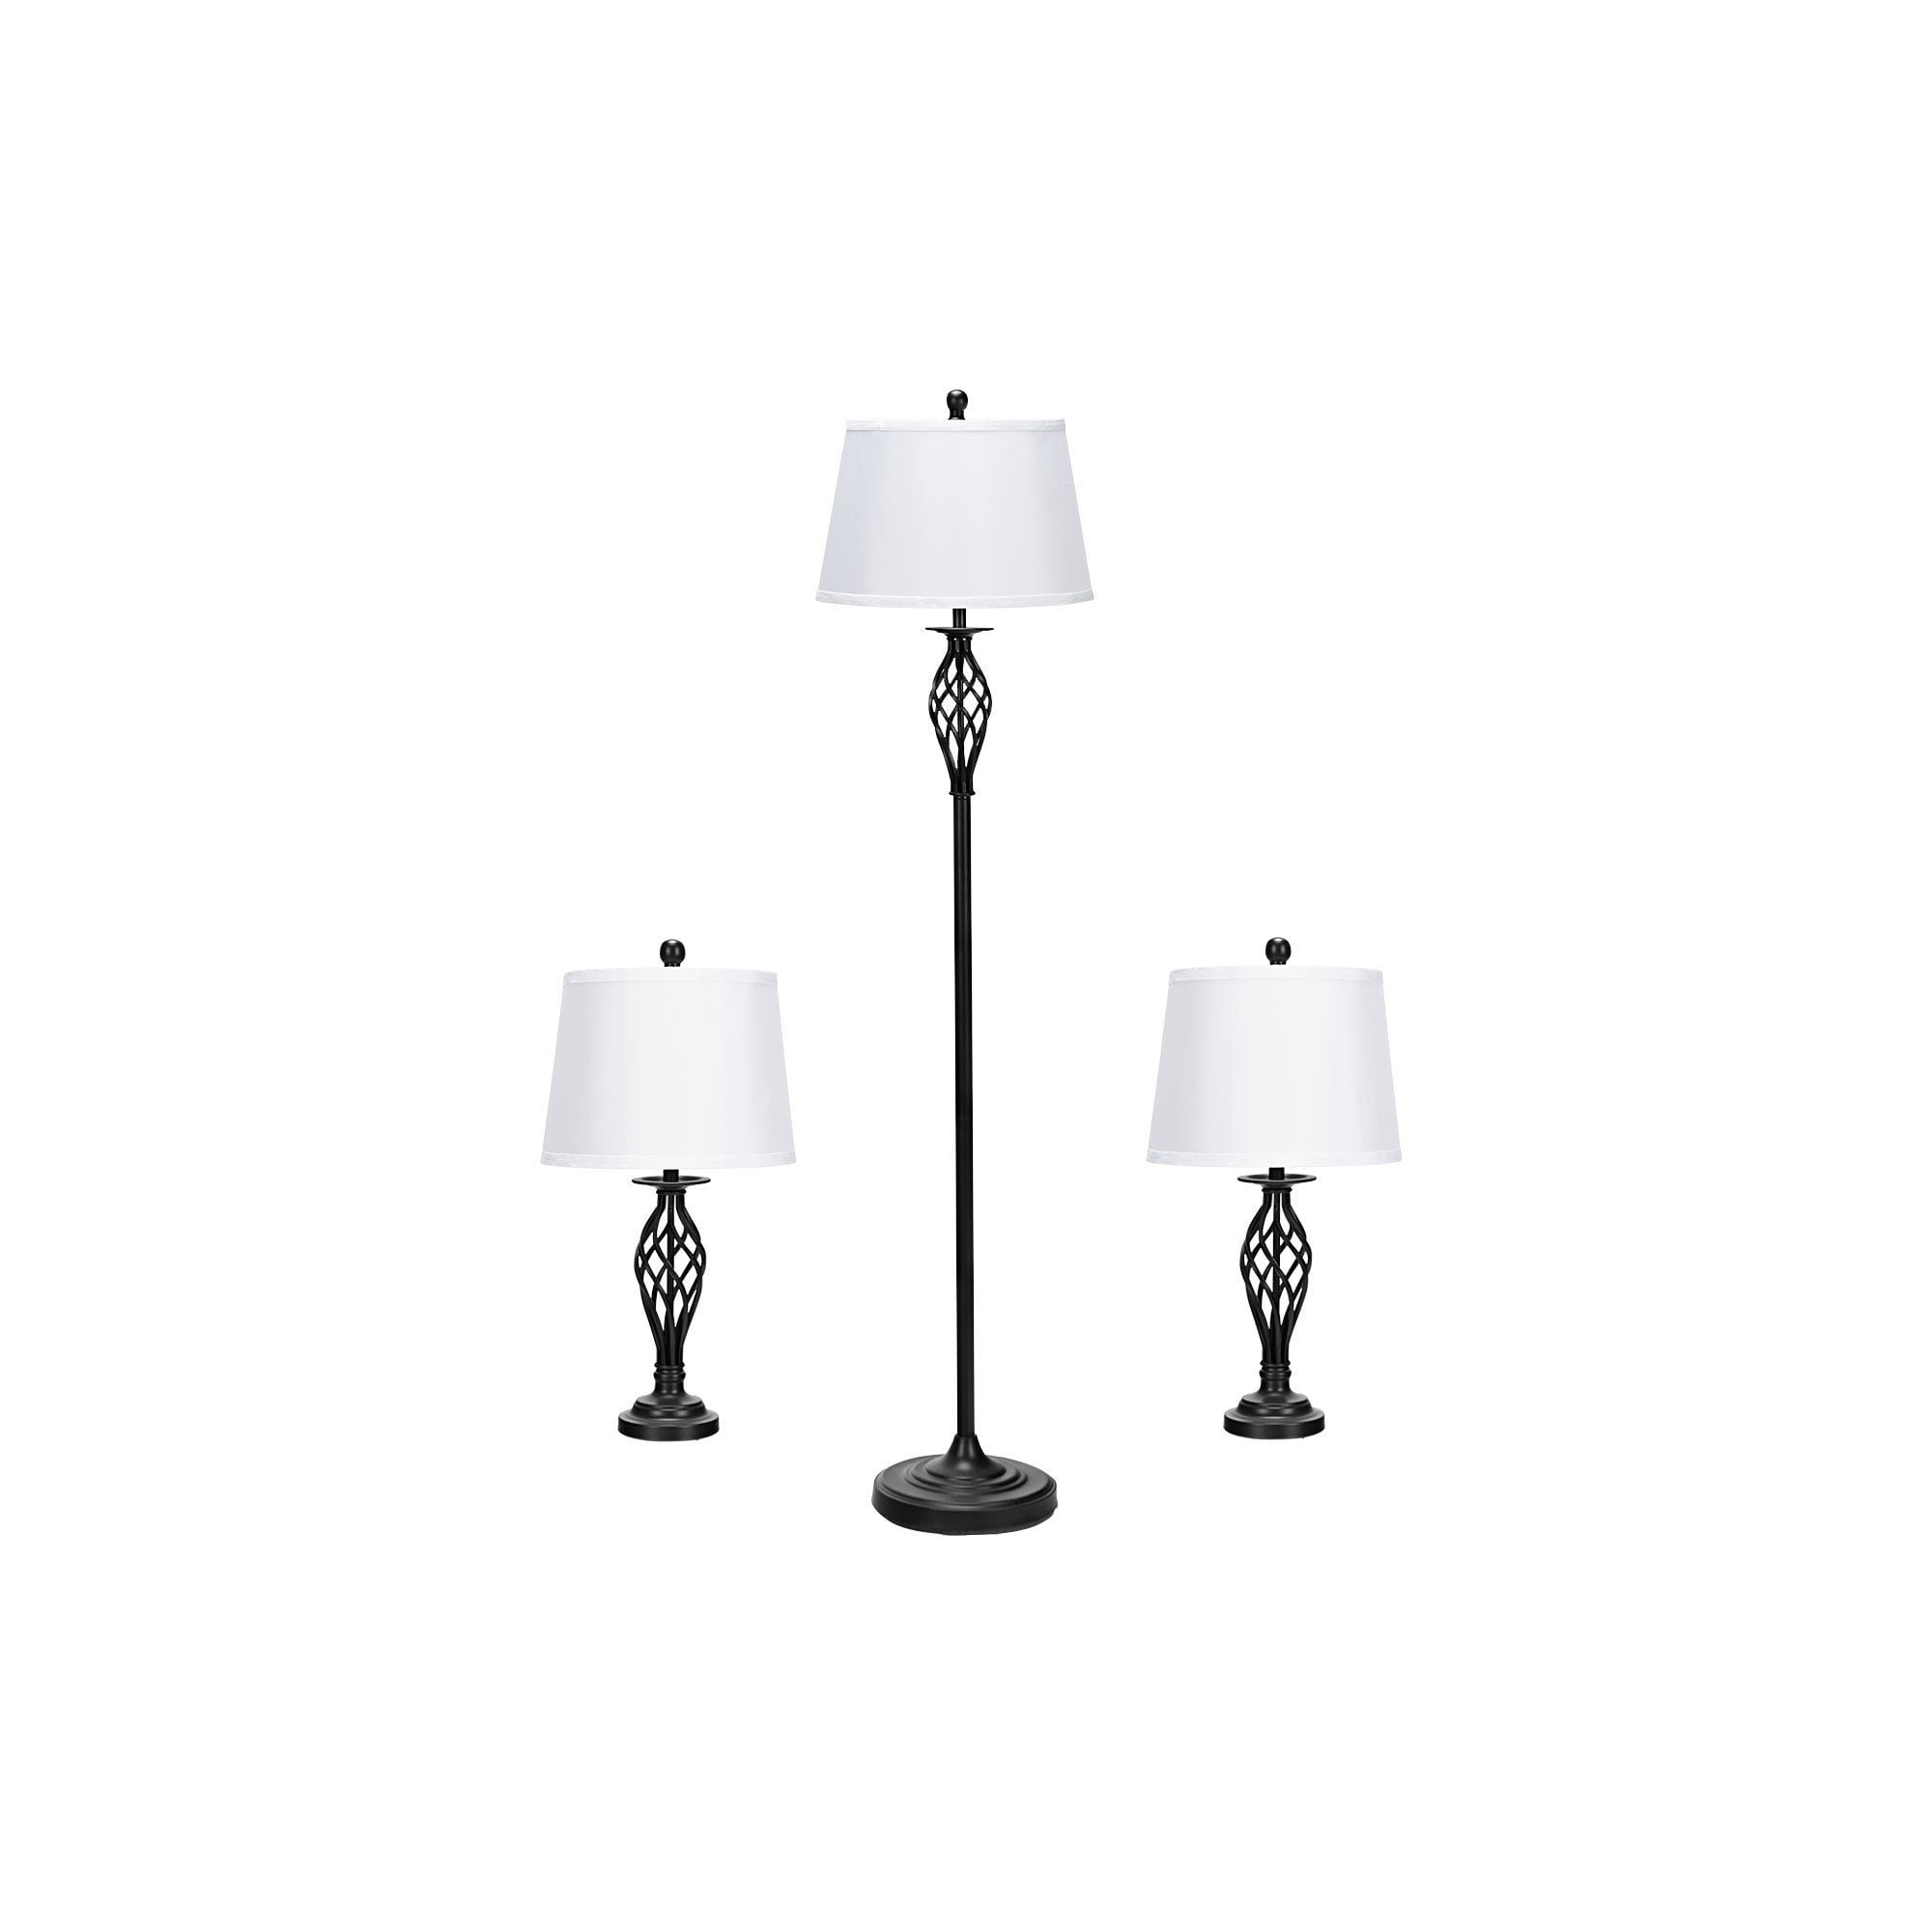 Gymax 1111-Piece Lamp Set 1111 Table Lamps 11 Floor Lamp Fabric Shades Living Room  Bedroom